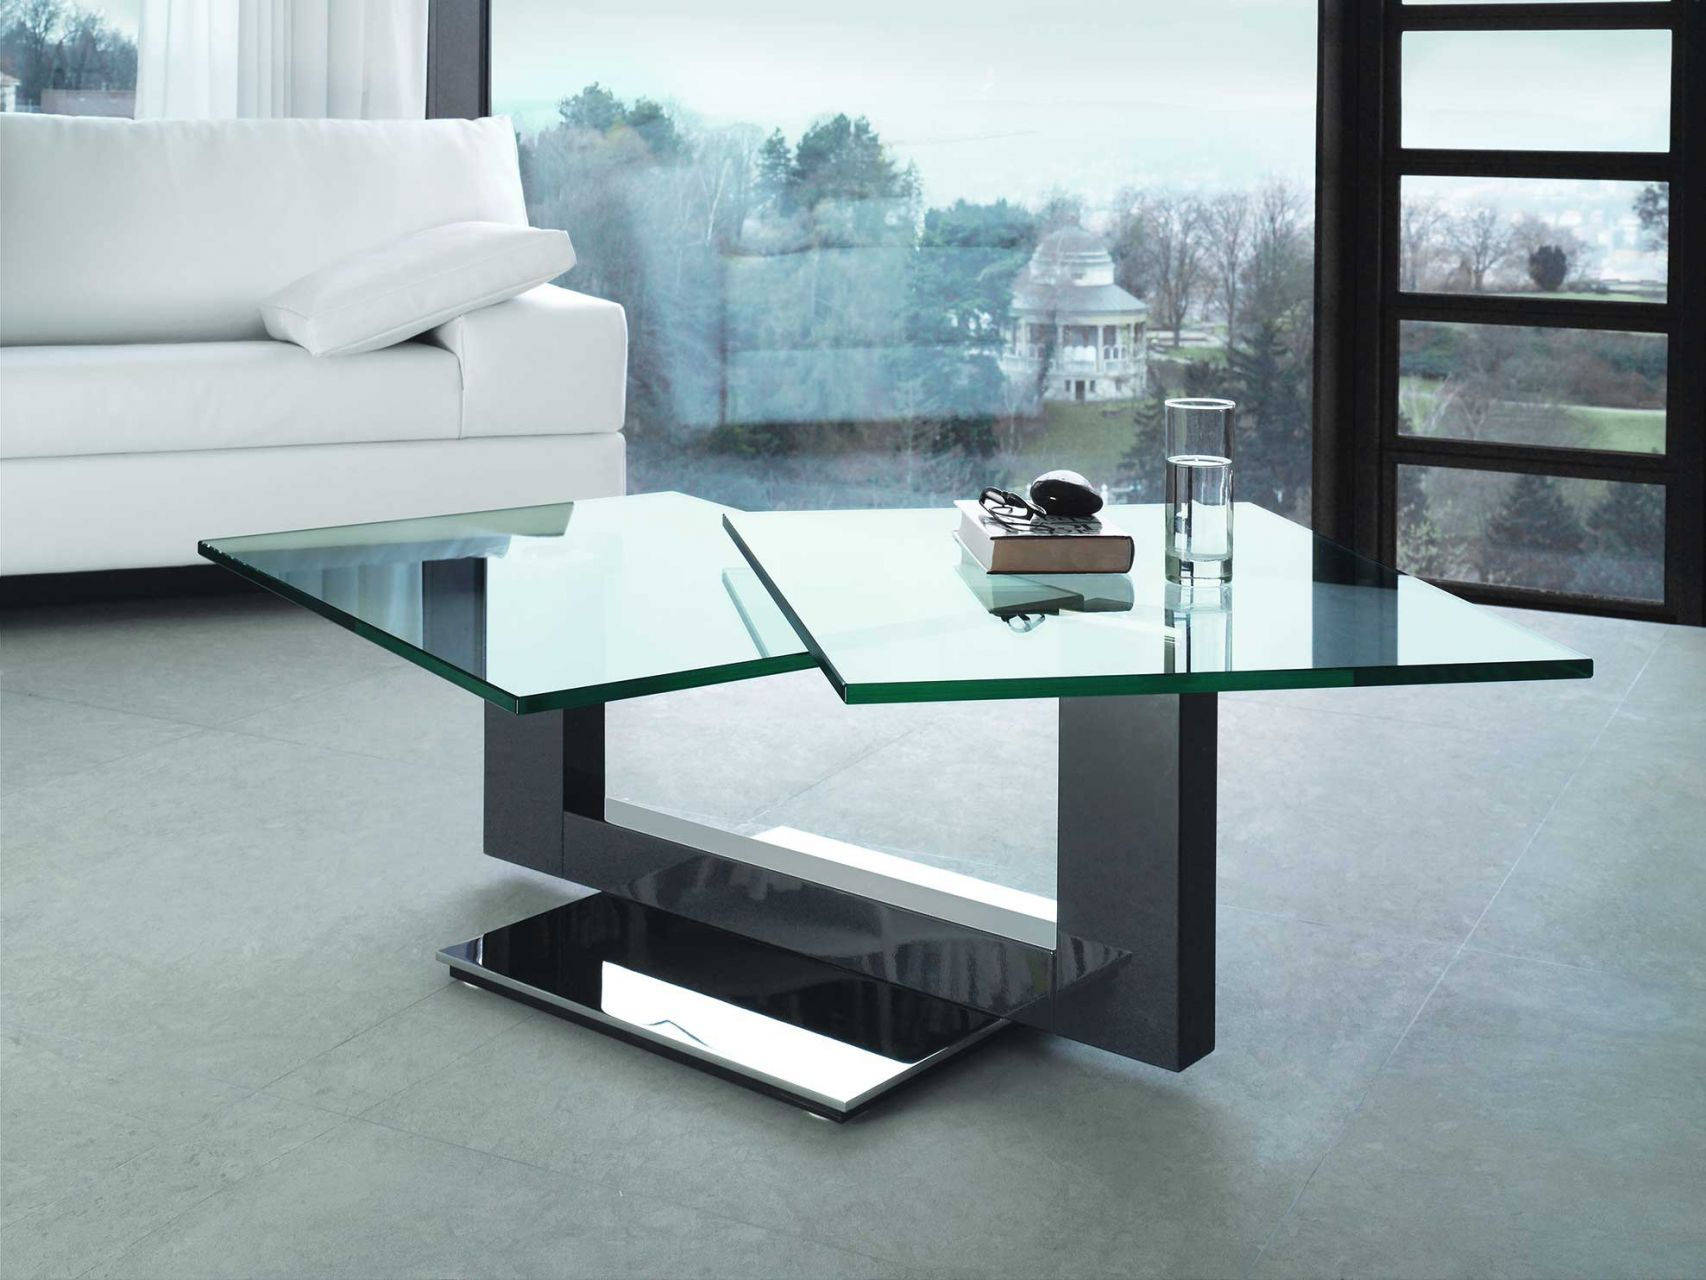 glas couchtisch schwenkbar energiemakeovernop. Black Bedroom Furniture Sets. Home Design Ideas